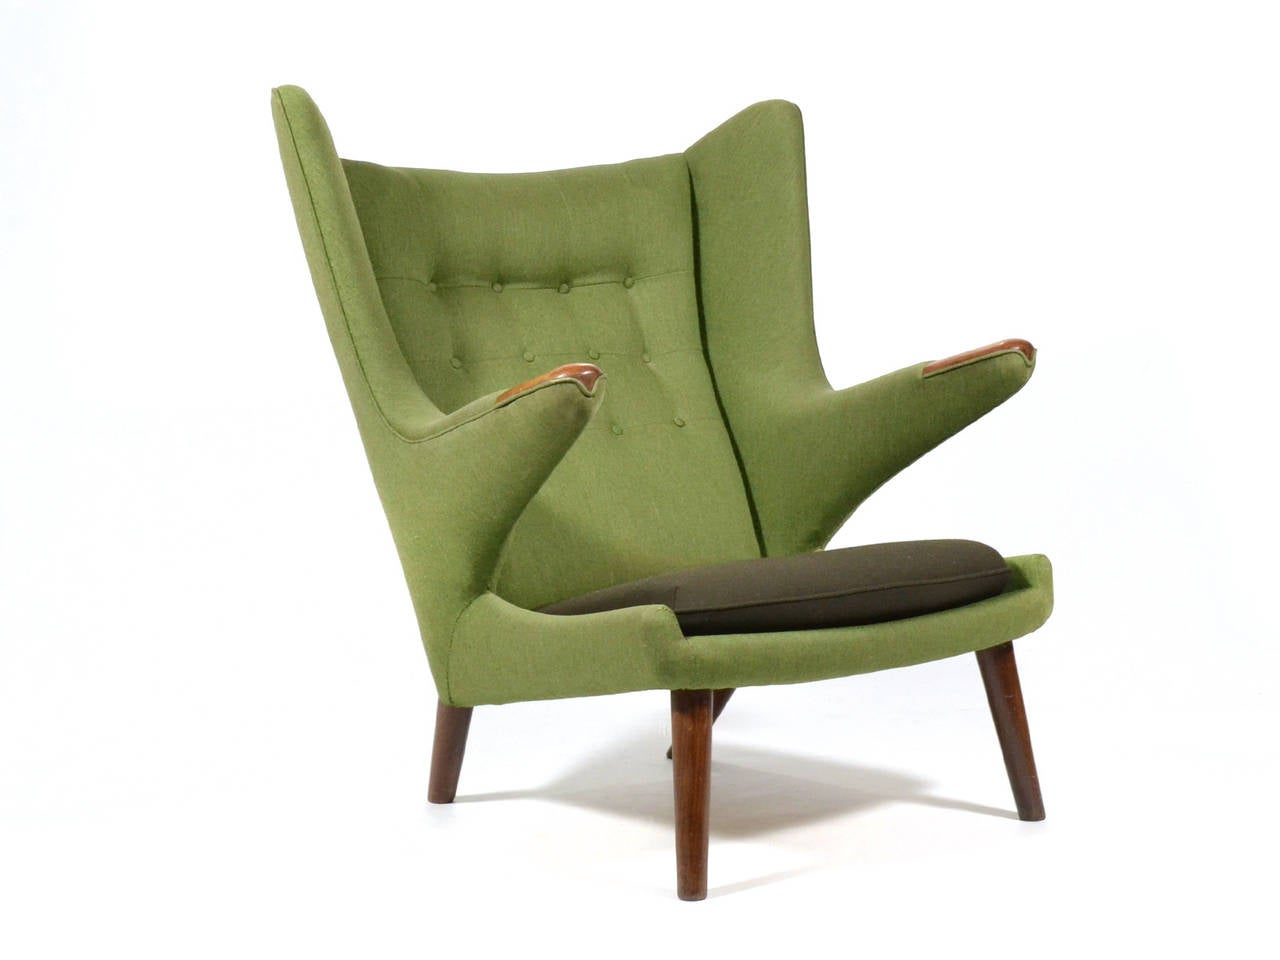 Renowned for it's beautiful design and incredible comfort, the Papa Bear chair has become an icon of 20th century Danish design. This exceptional example of Wegner's masterpiece is in amazing original condition. It features sage green fabric, a